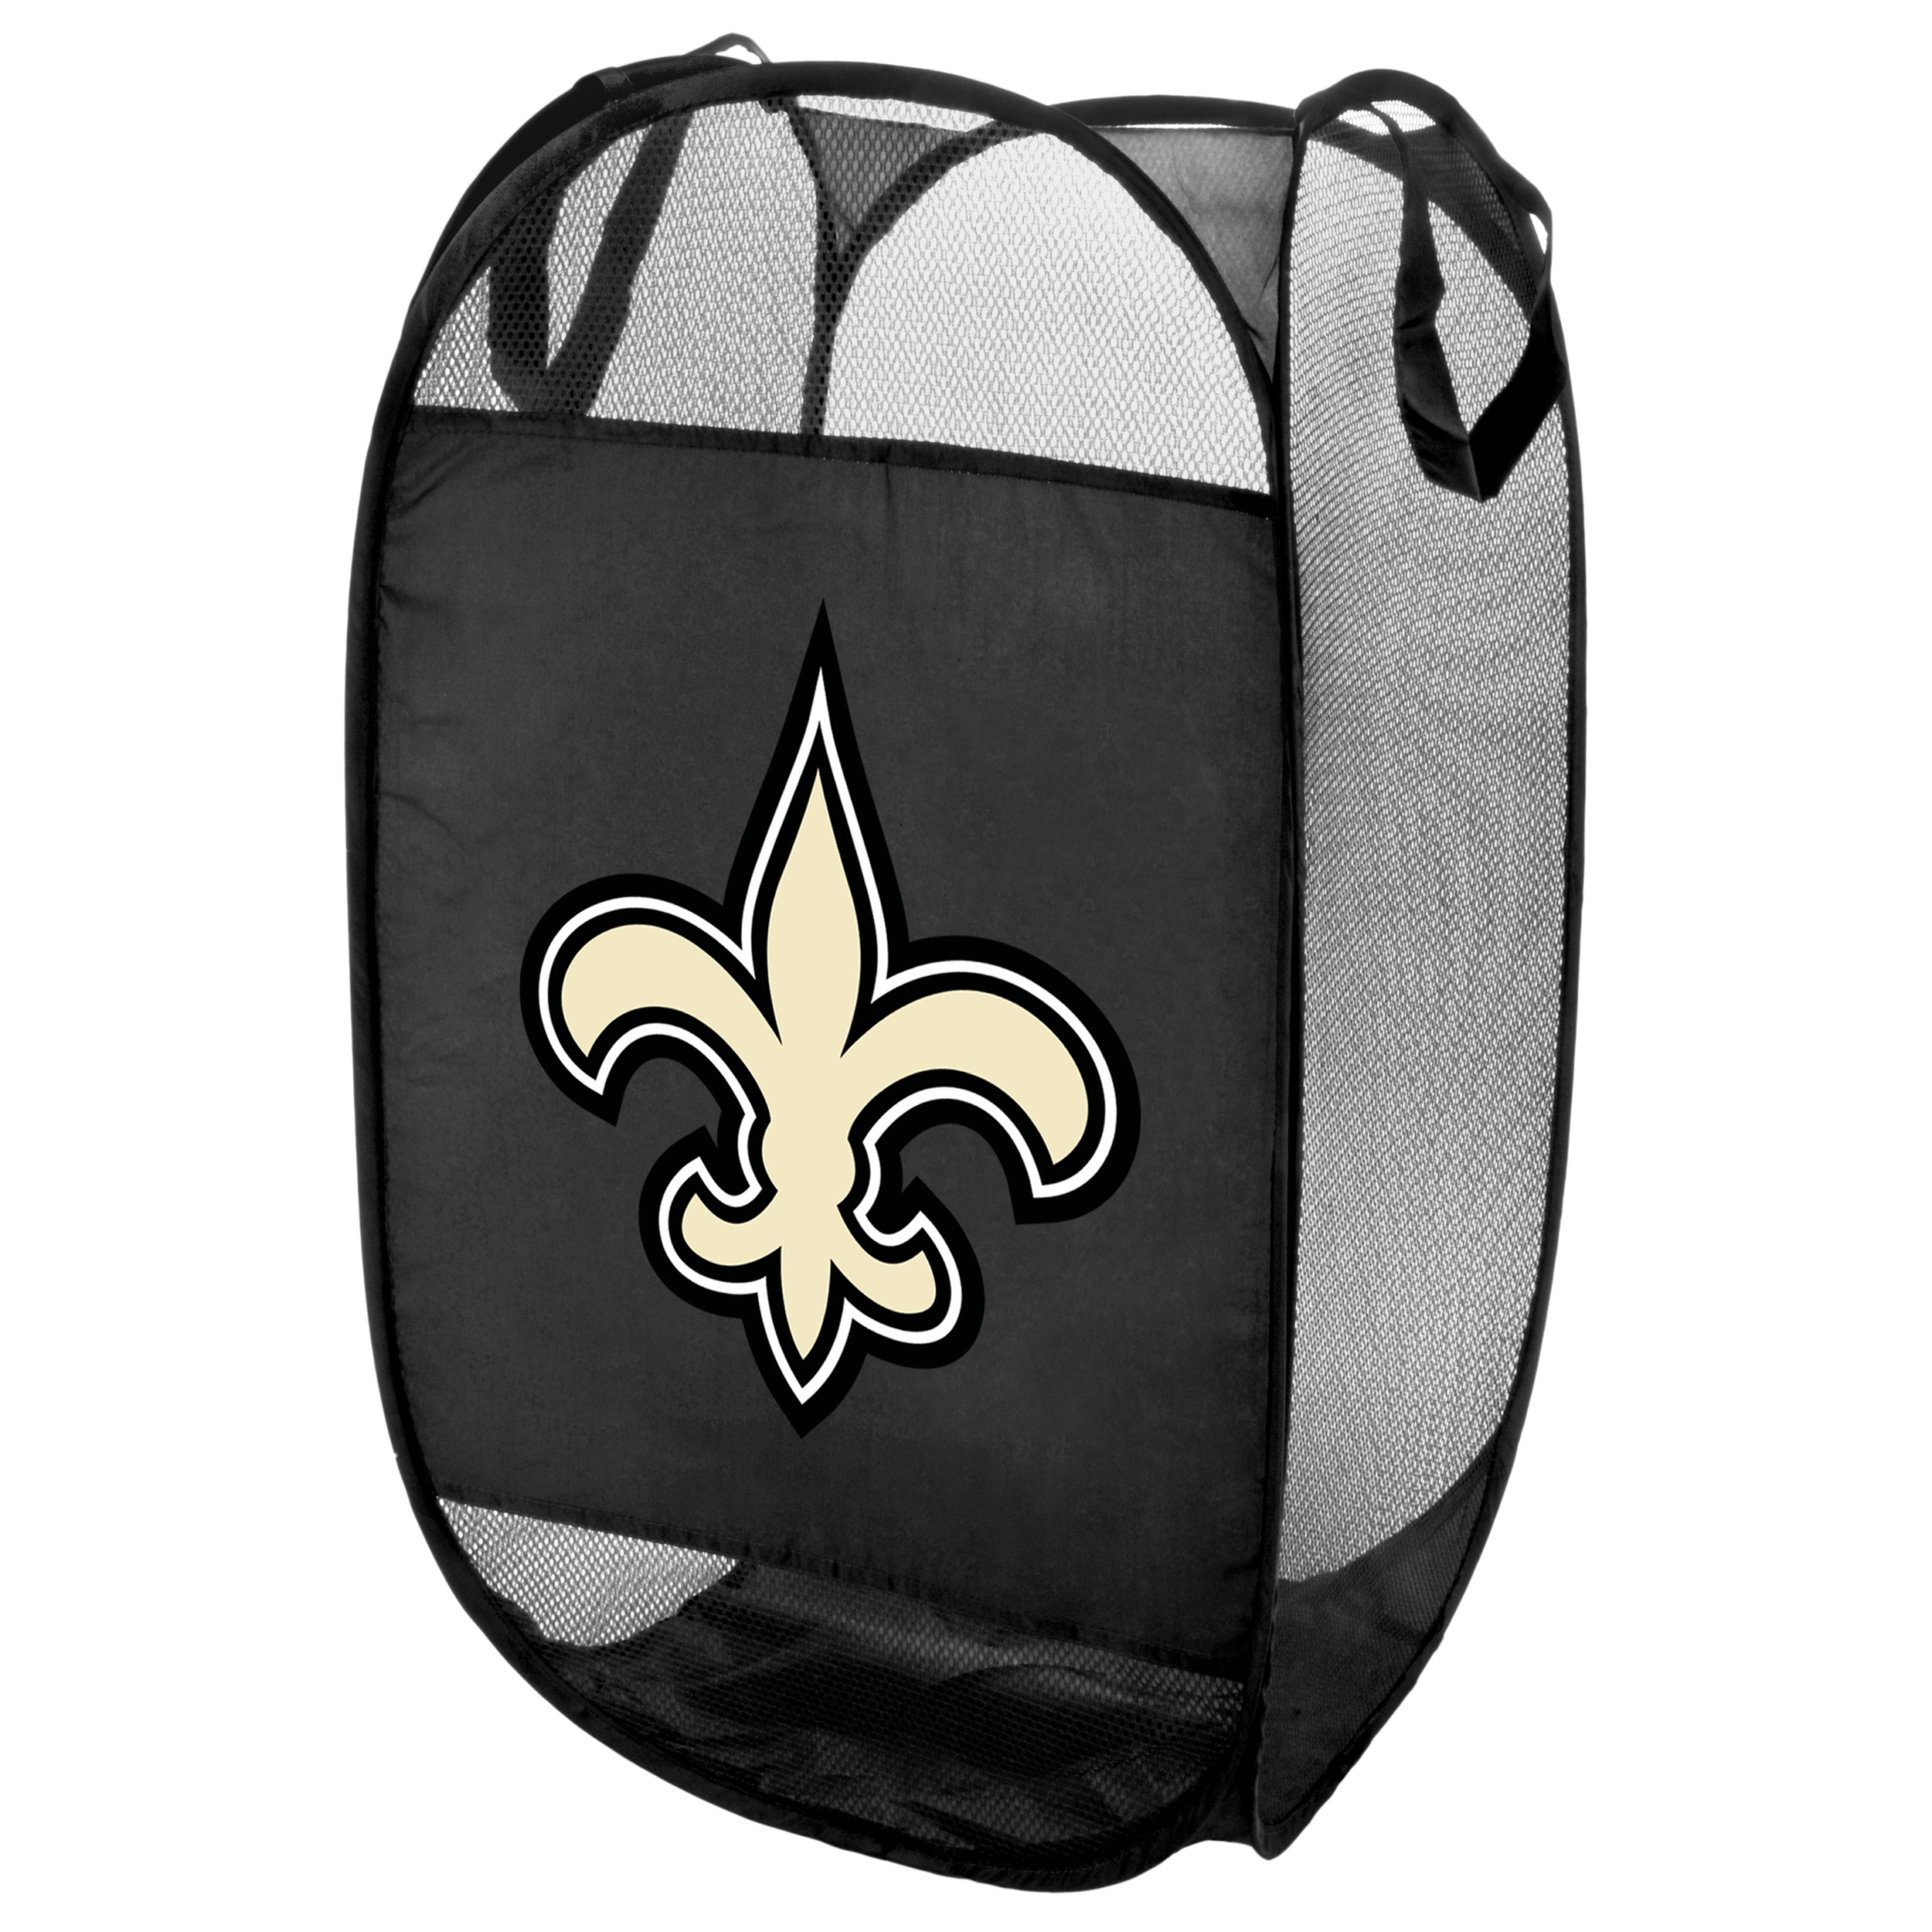 New Orleans Saints Official NFL Laundry Hamper Fold Up Flip Open by Forever Collectibles 050049